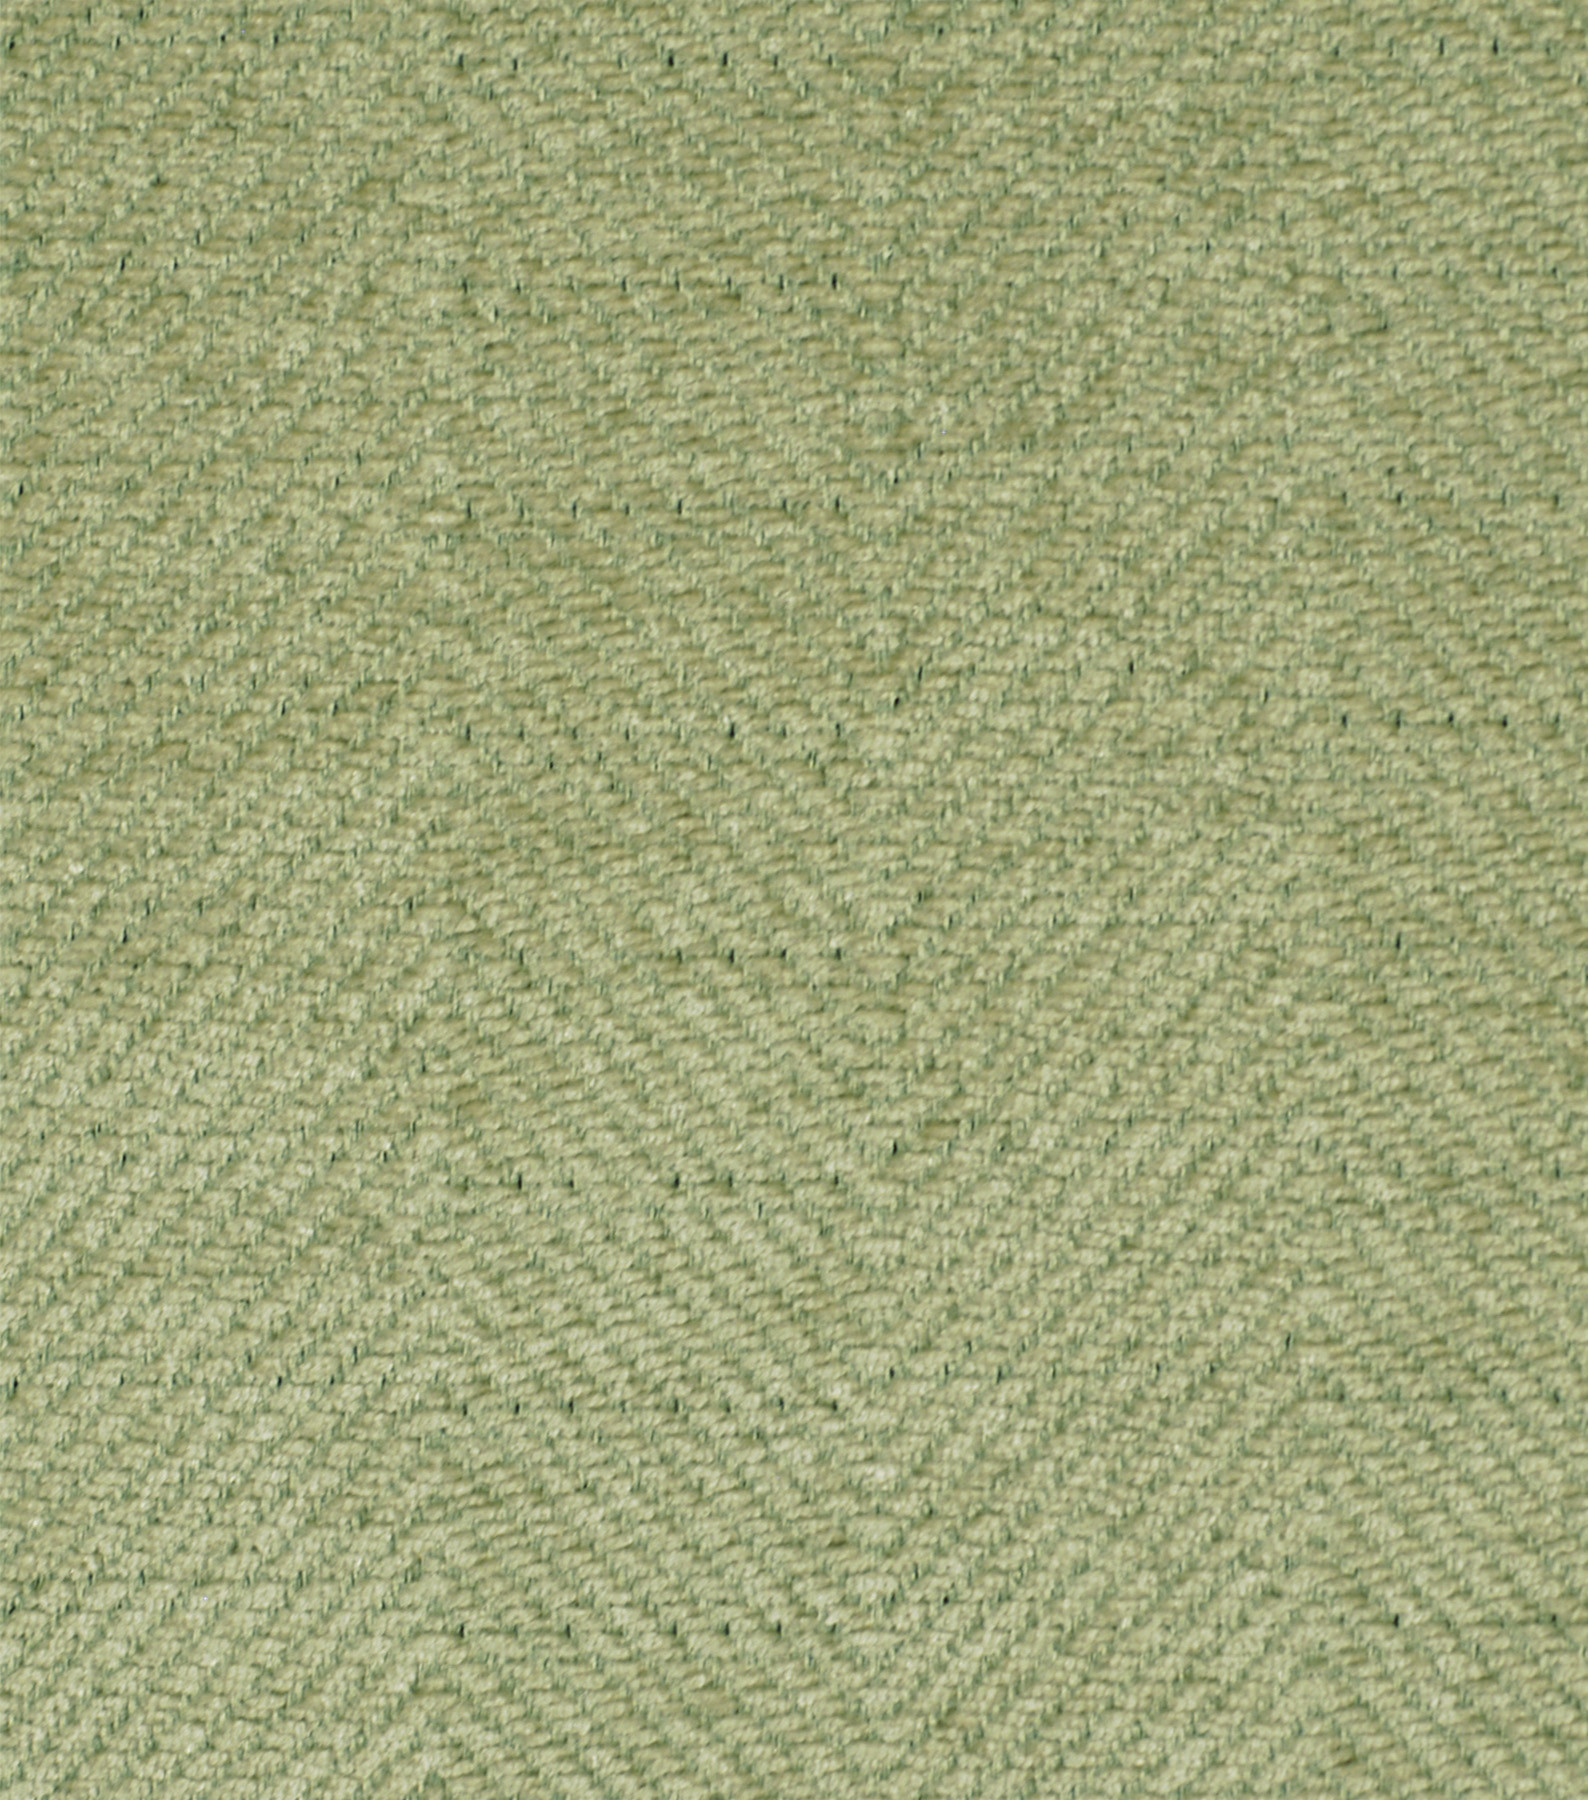 Home Decor 8\u0022x8\u0022 Fabric Swatch-Signature Series Sweater Mist